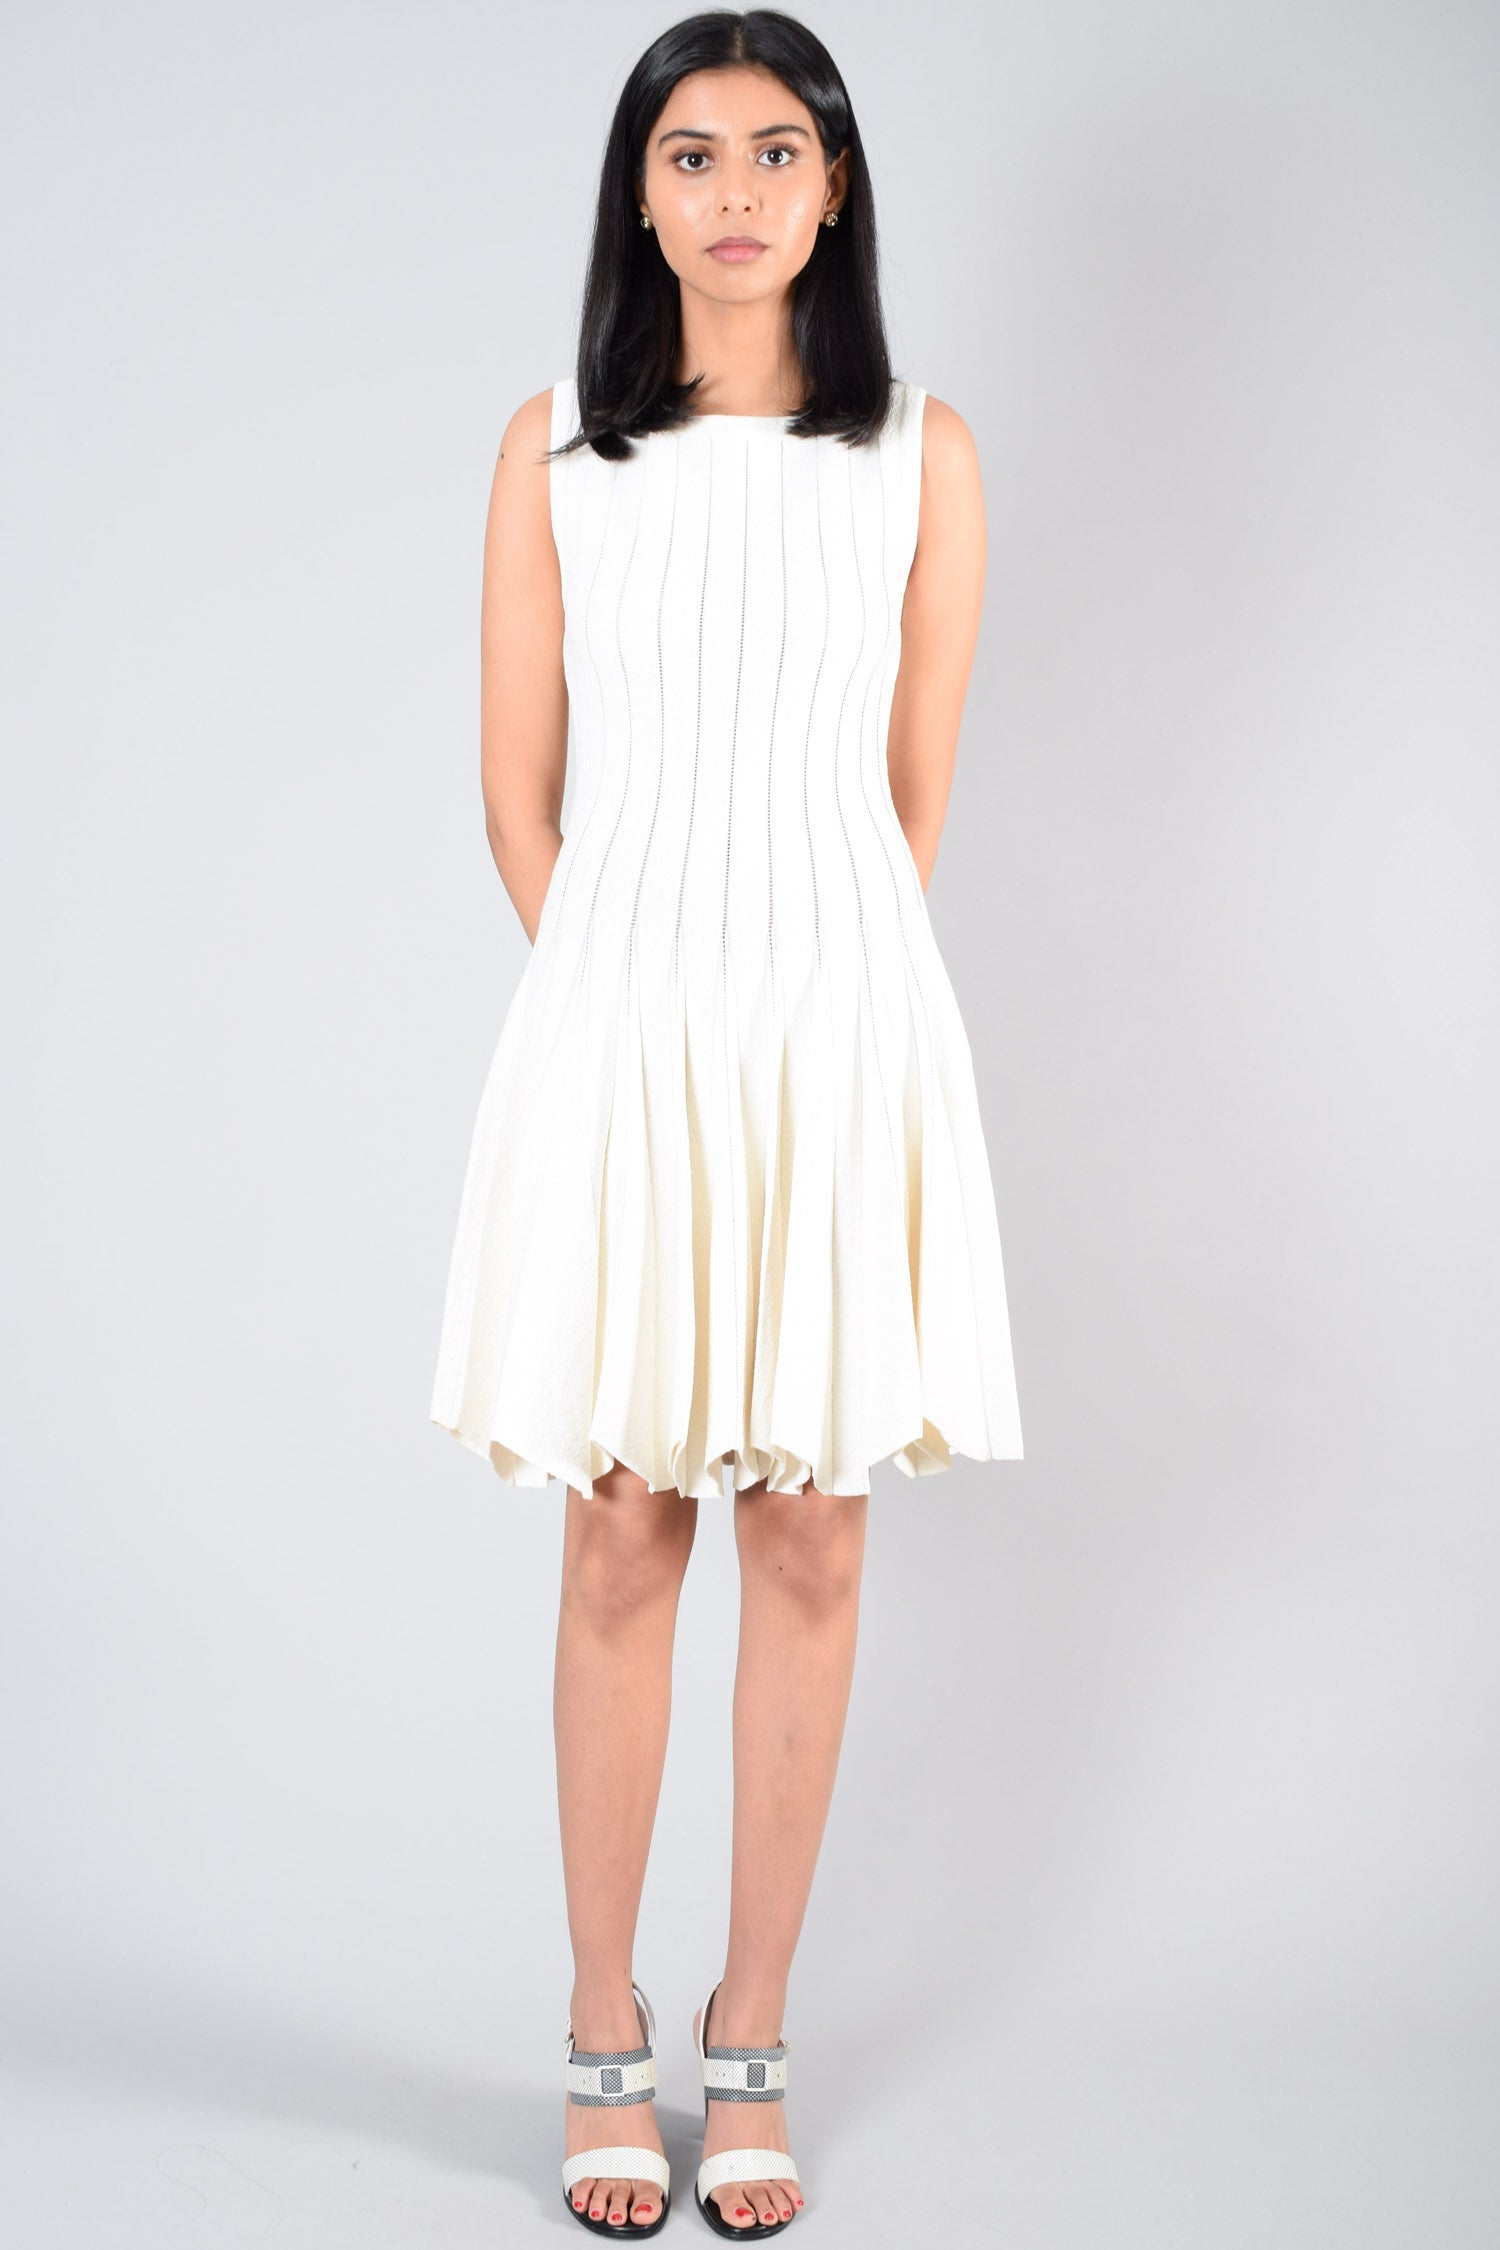 Alaia Vintage Cream Textured Sleeveless Dress Size S (Missing Tag)